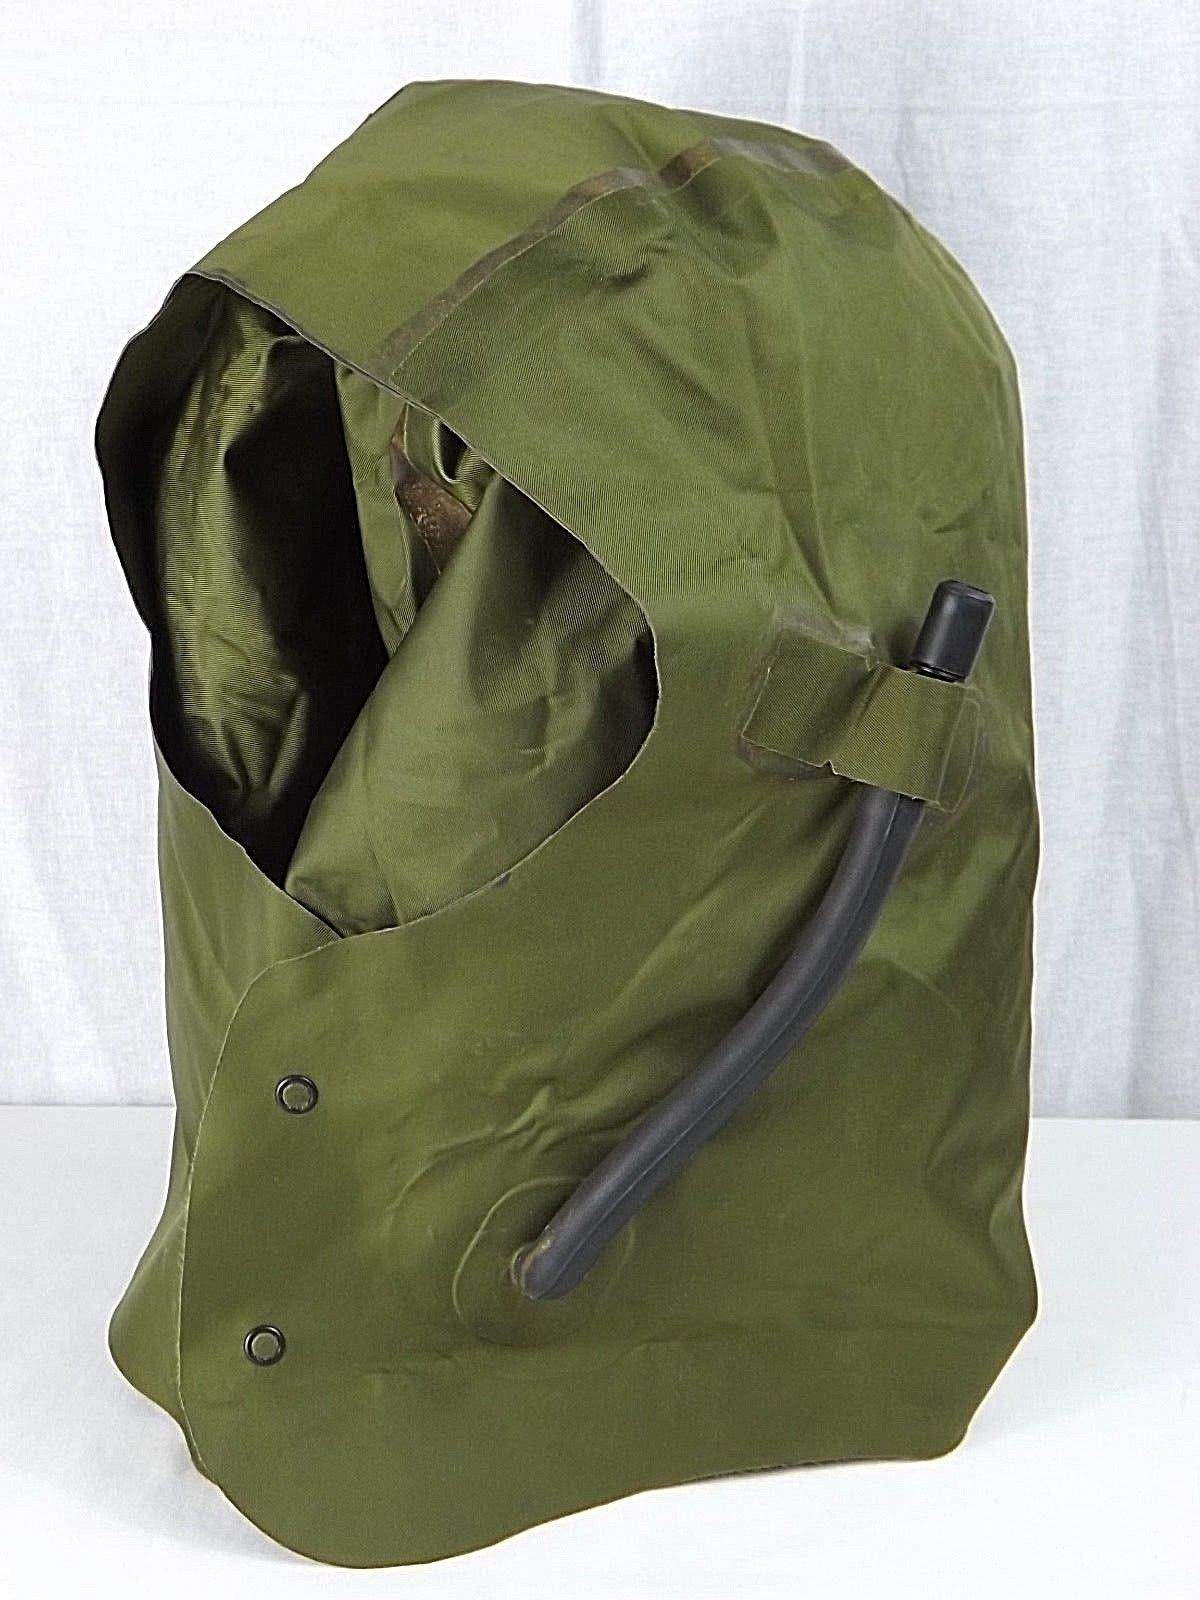 Primary image for Harris Mfg. Co. Inc. Inflatable Survival Hood 30003/1414S101-1 OD Green